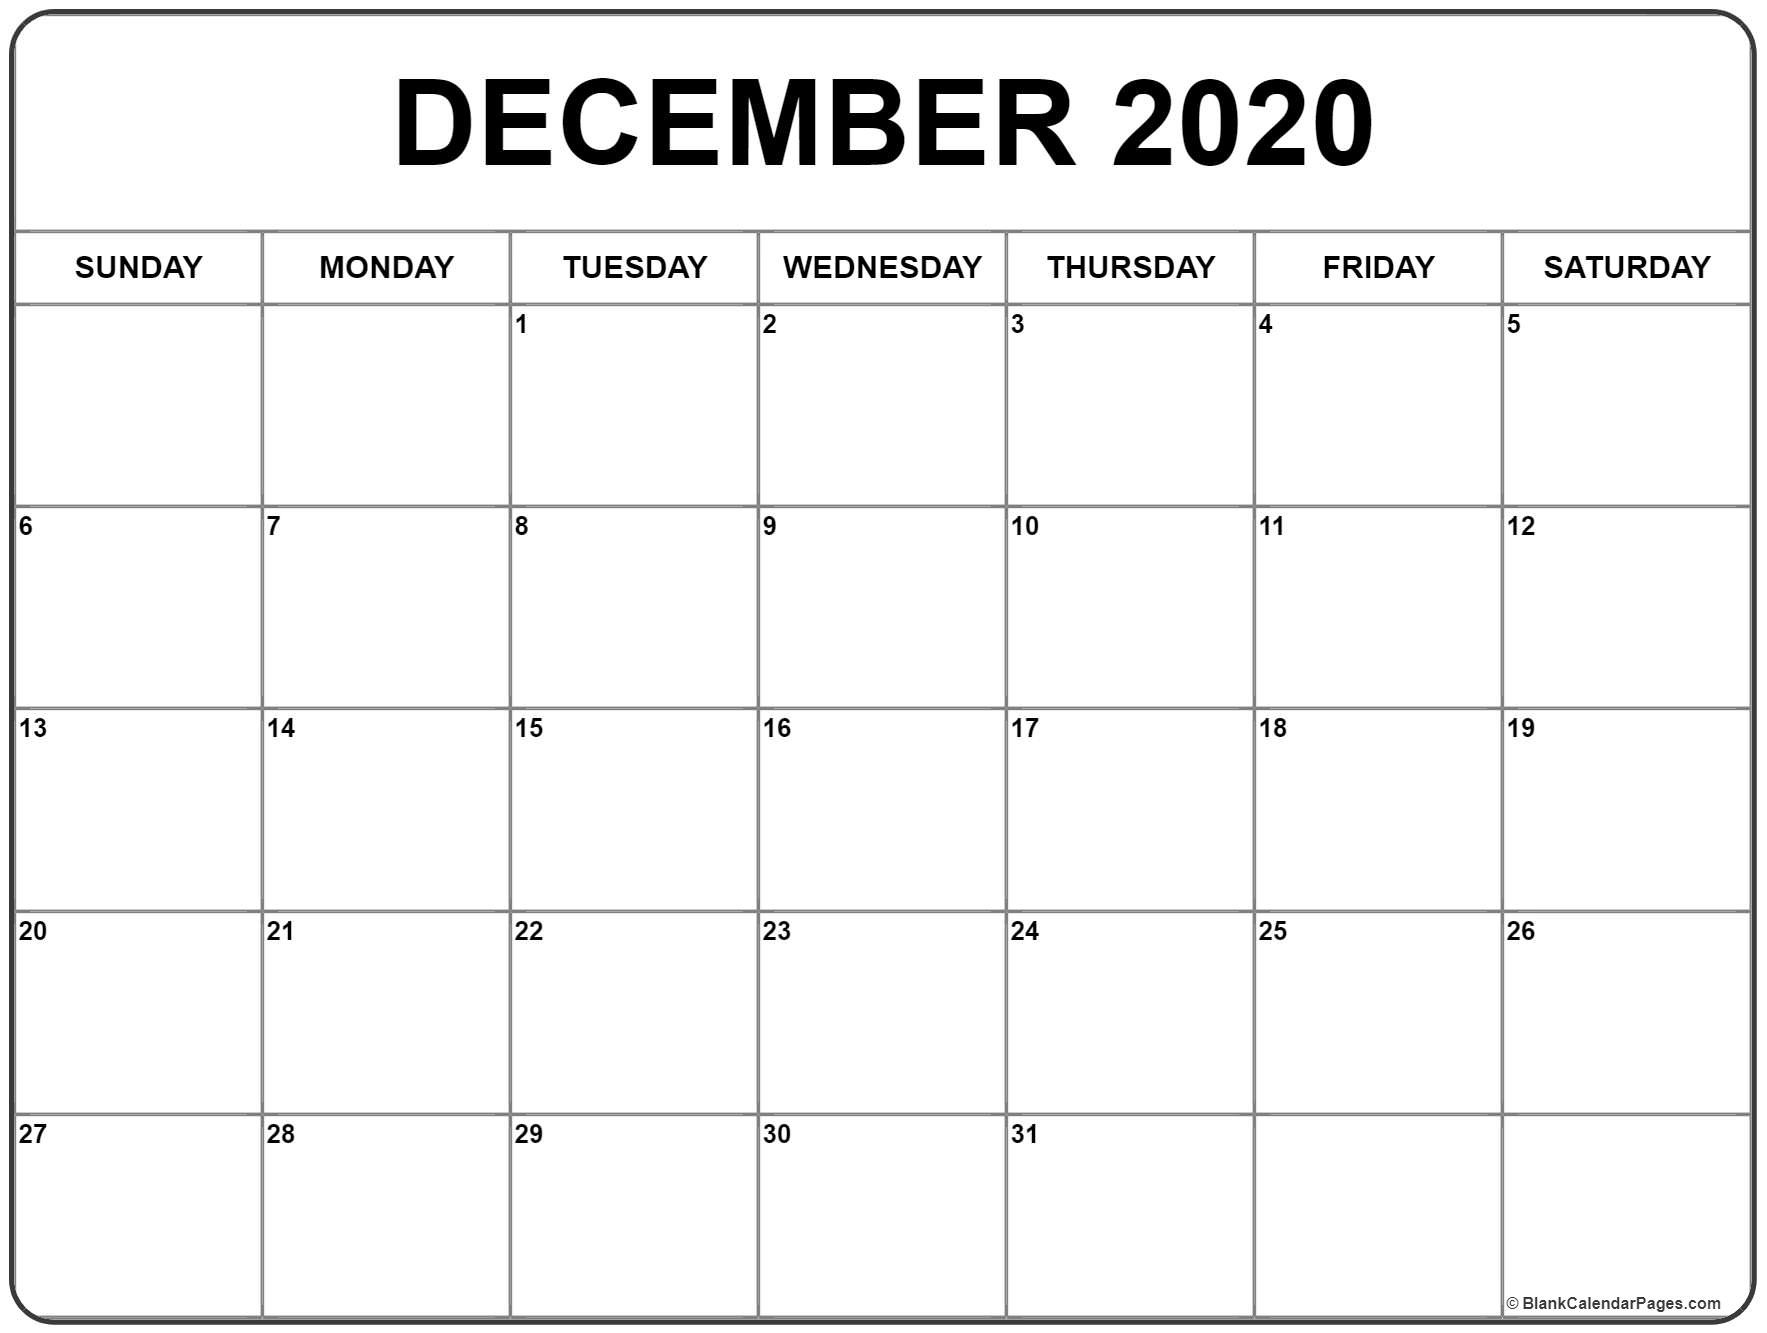 January Thru December 2020 Printable Monthly Calendar  August-December 2020 Calendar